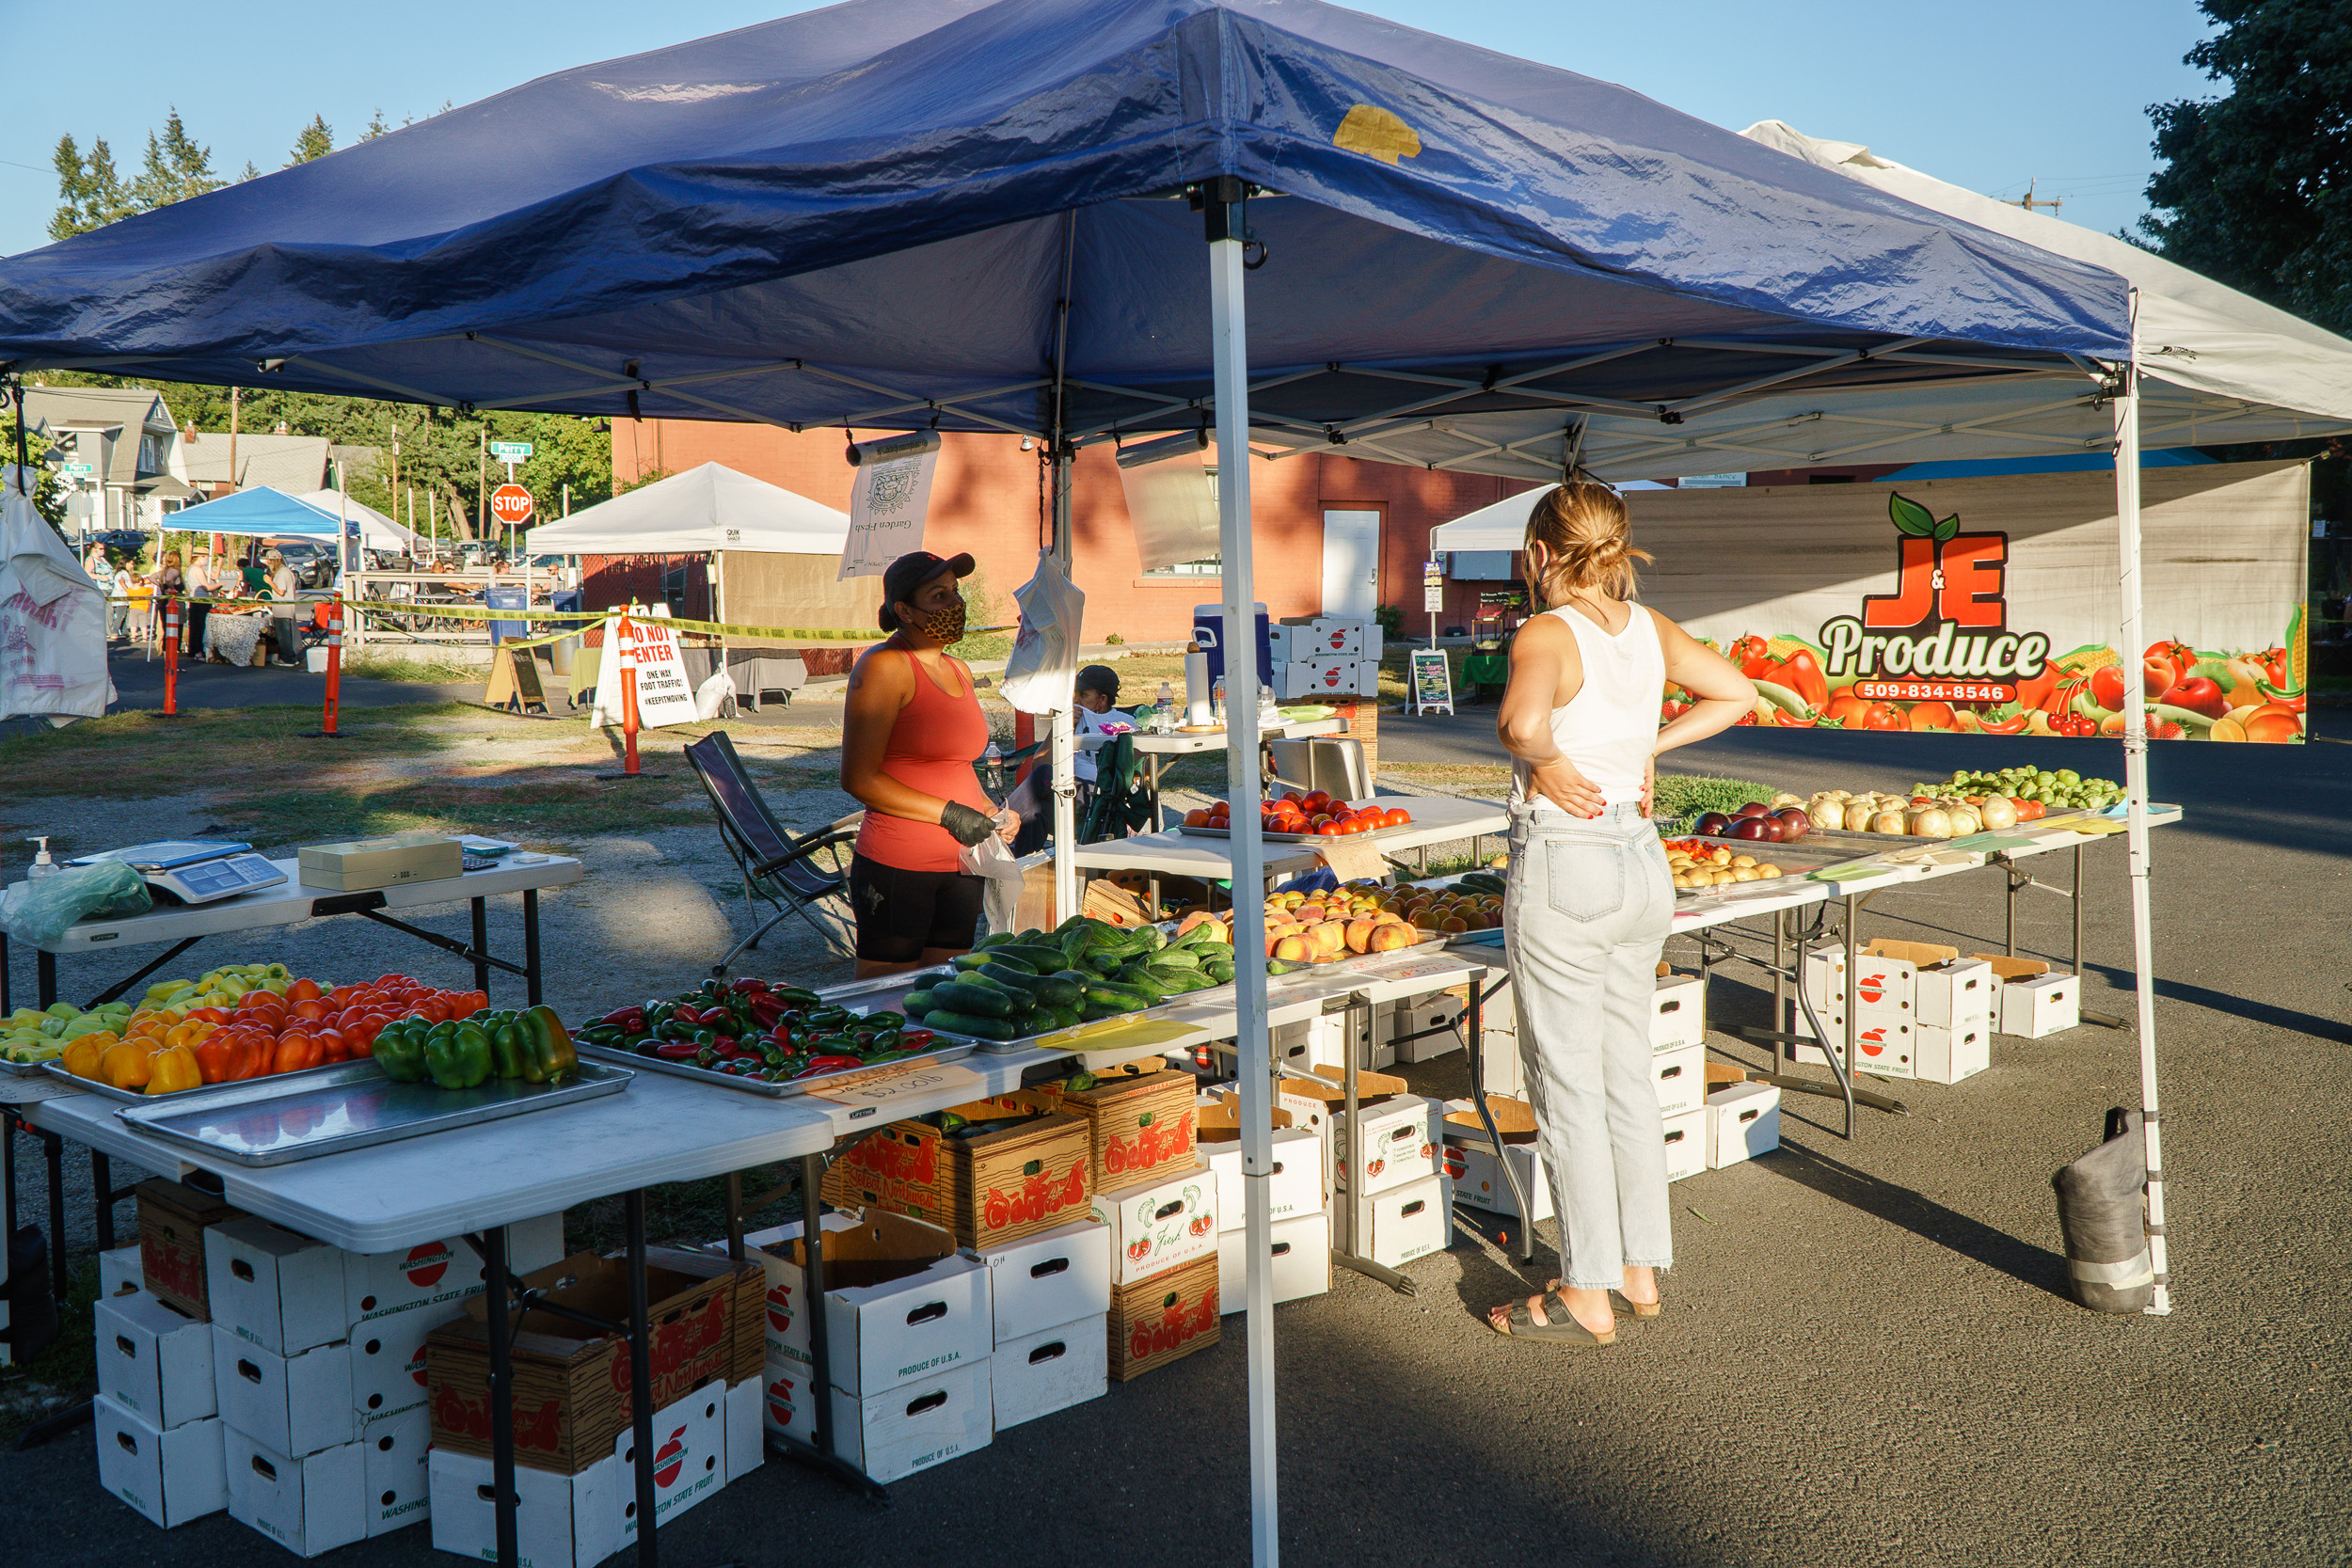 South Perry District Thursday Market